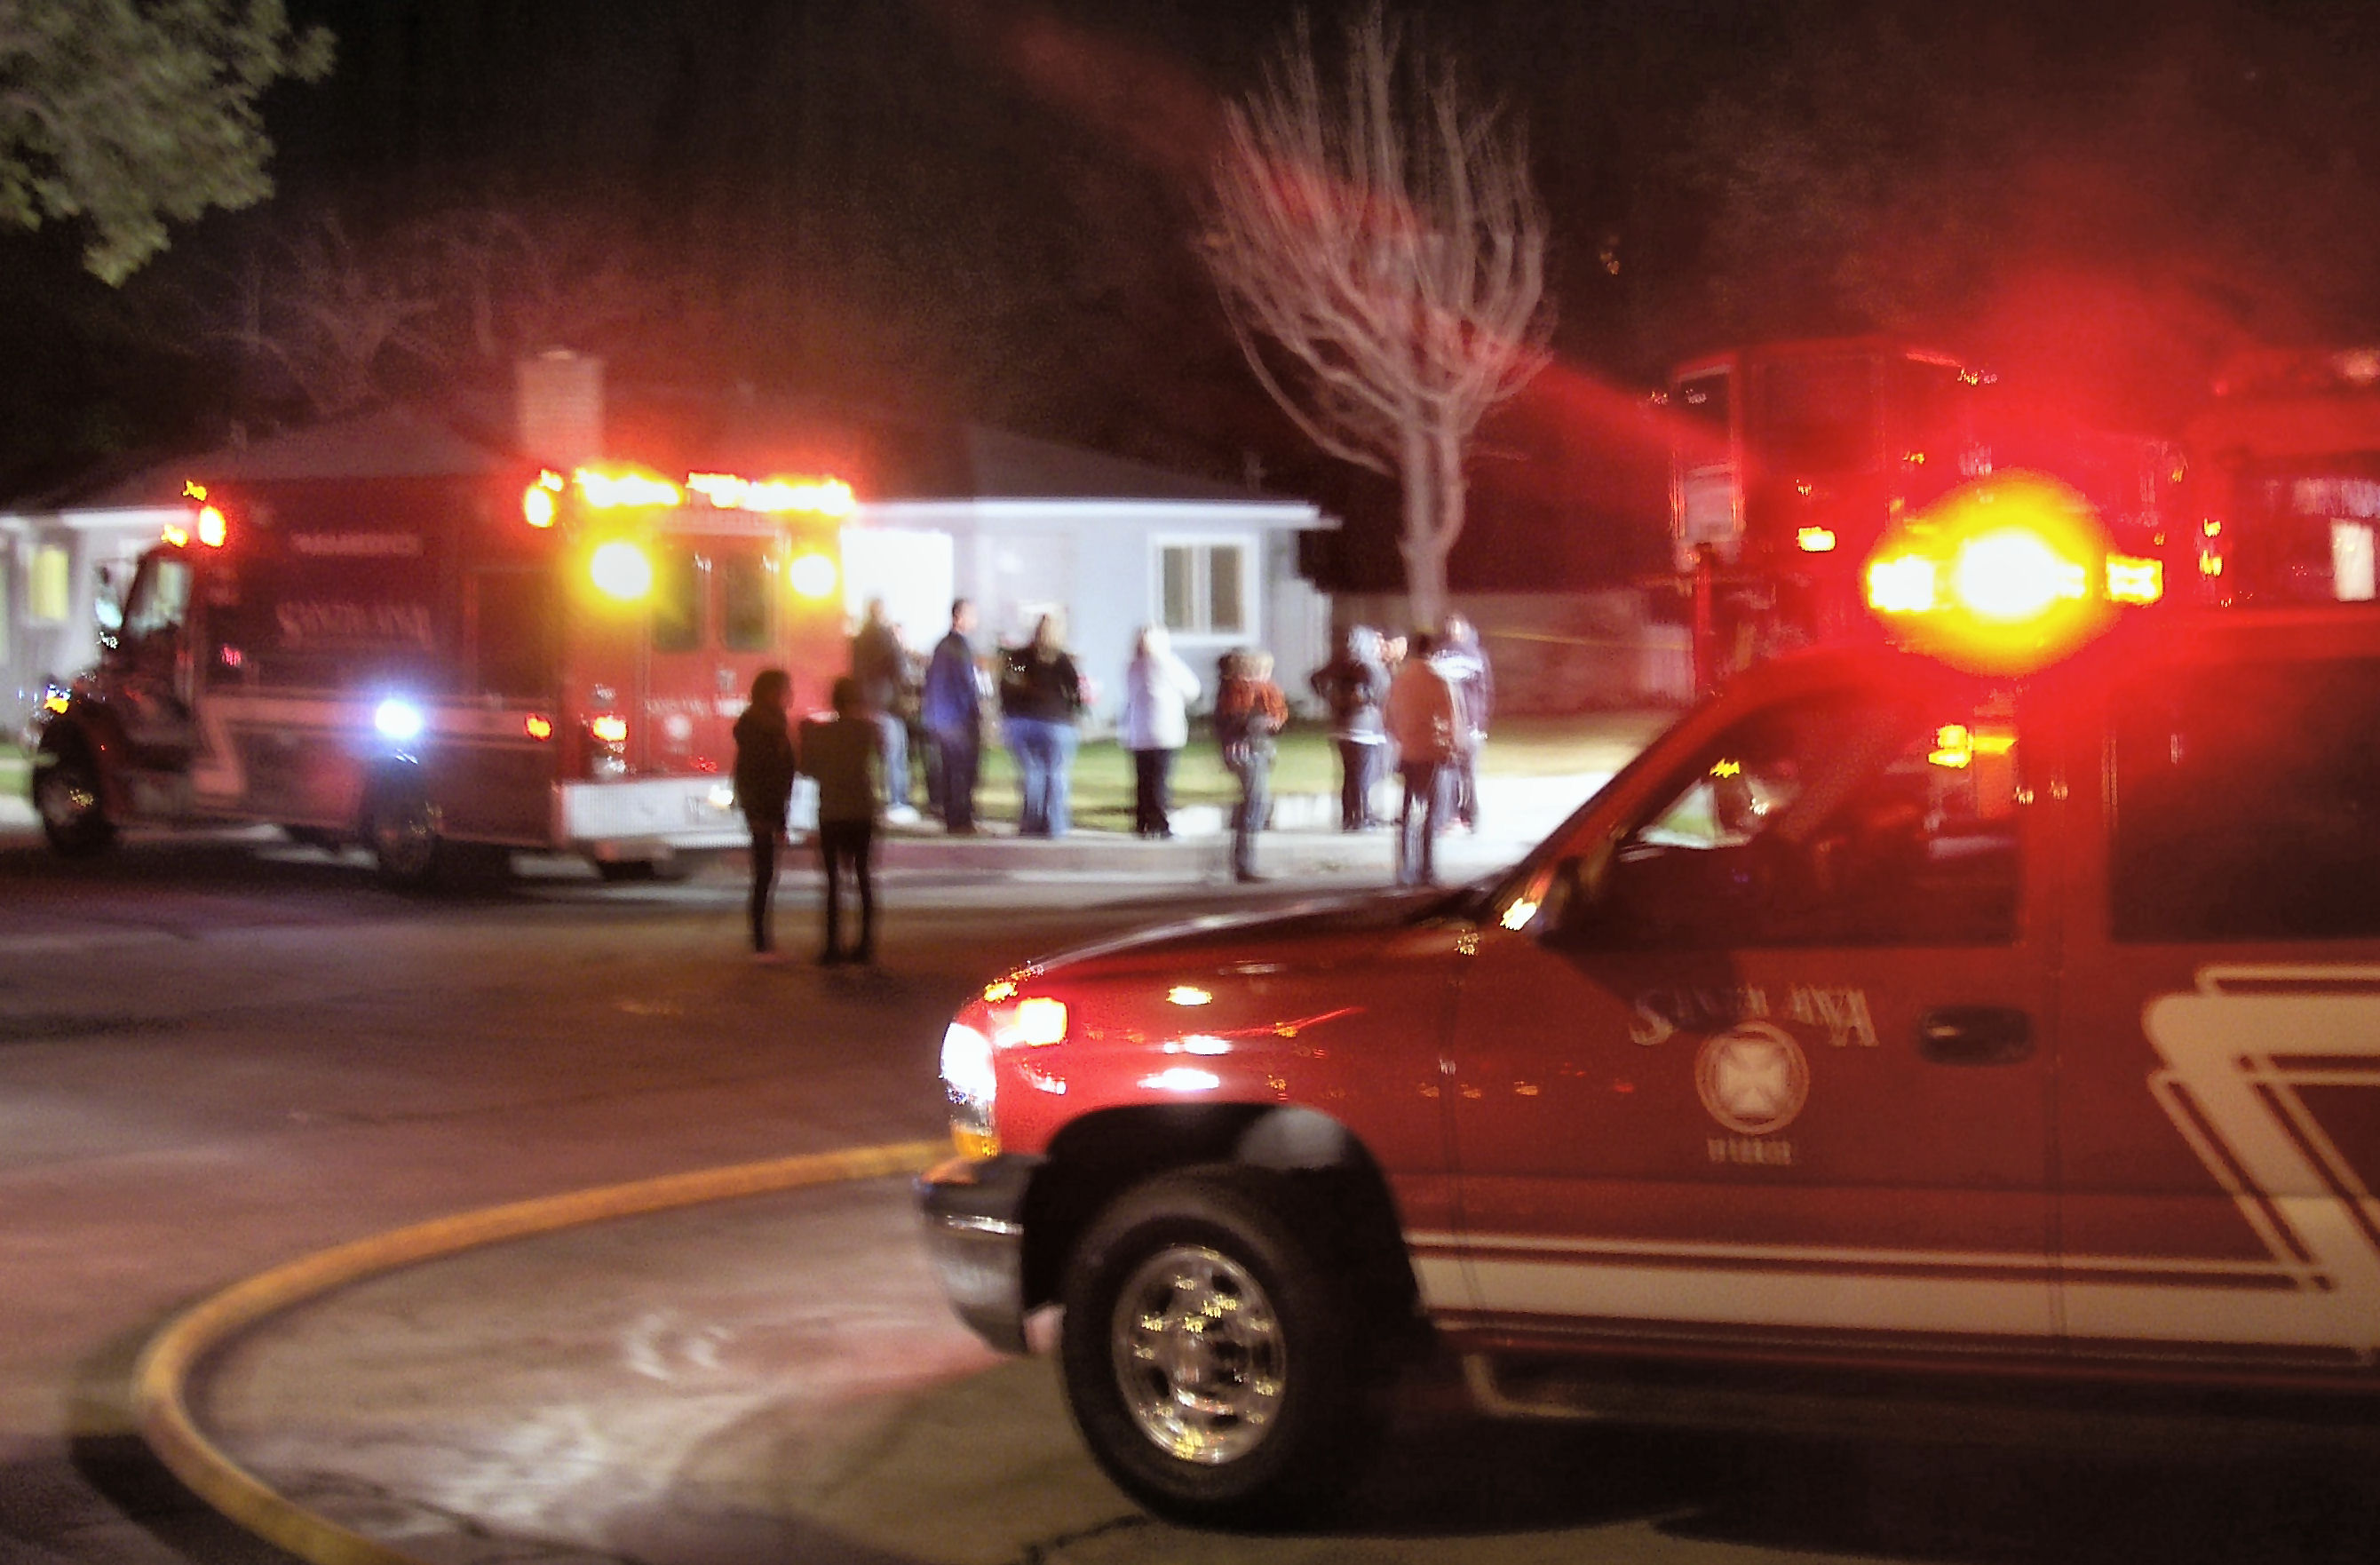 The scene was chaotic this evening in the Park Santiago neighborhood of Santa Ana, as perhaps a dozen fire trucks and police cars responded to a huge fire at the […]